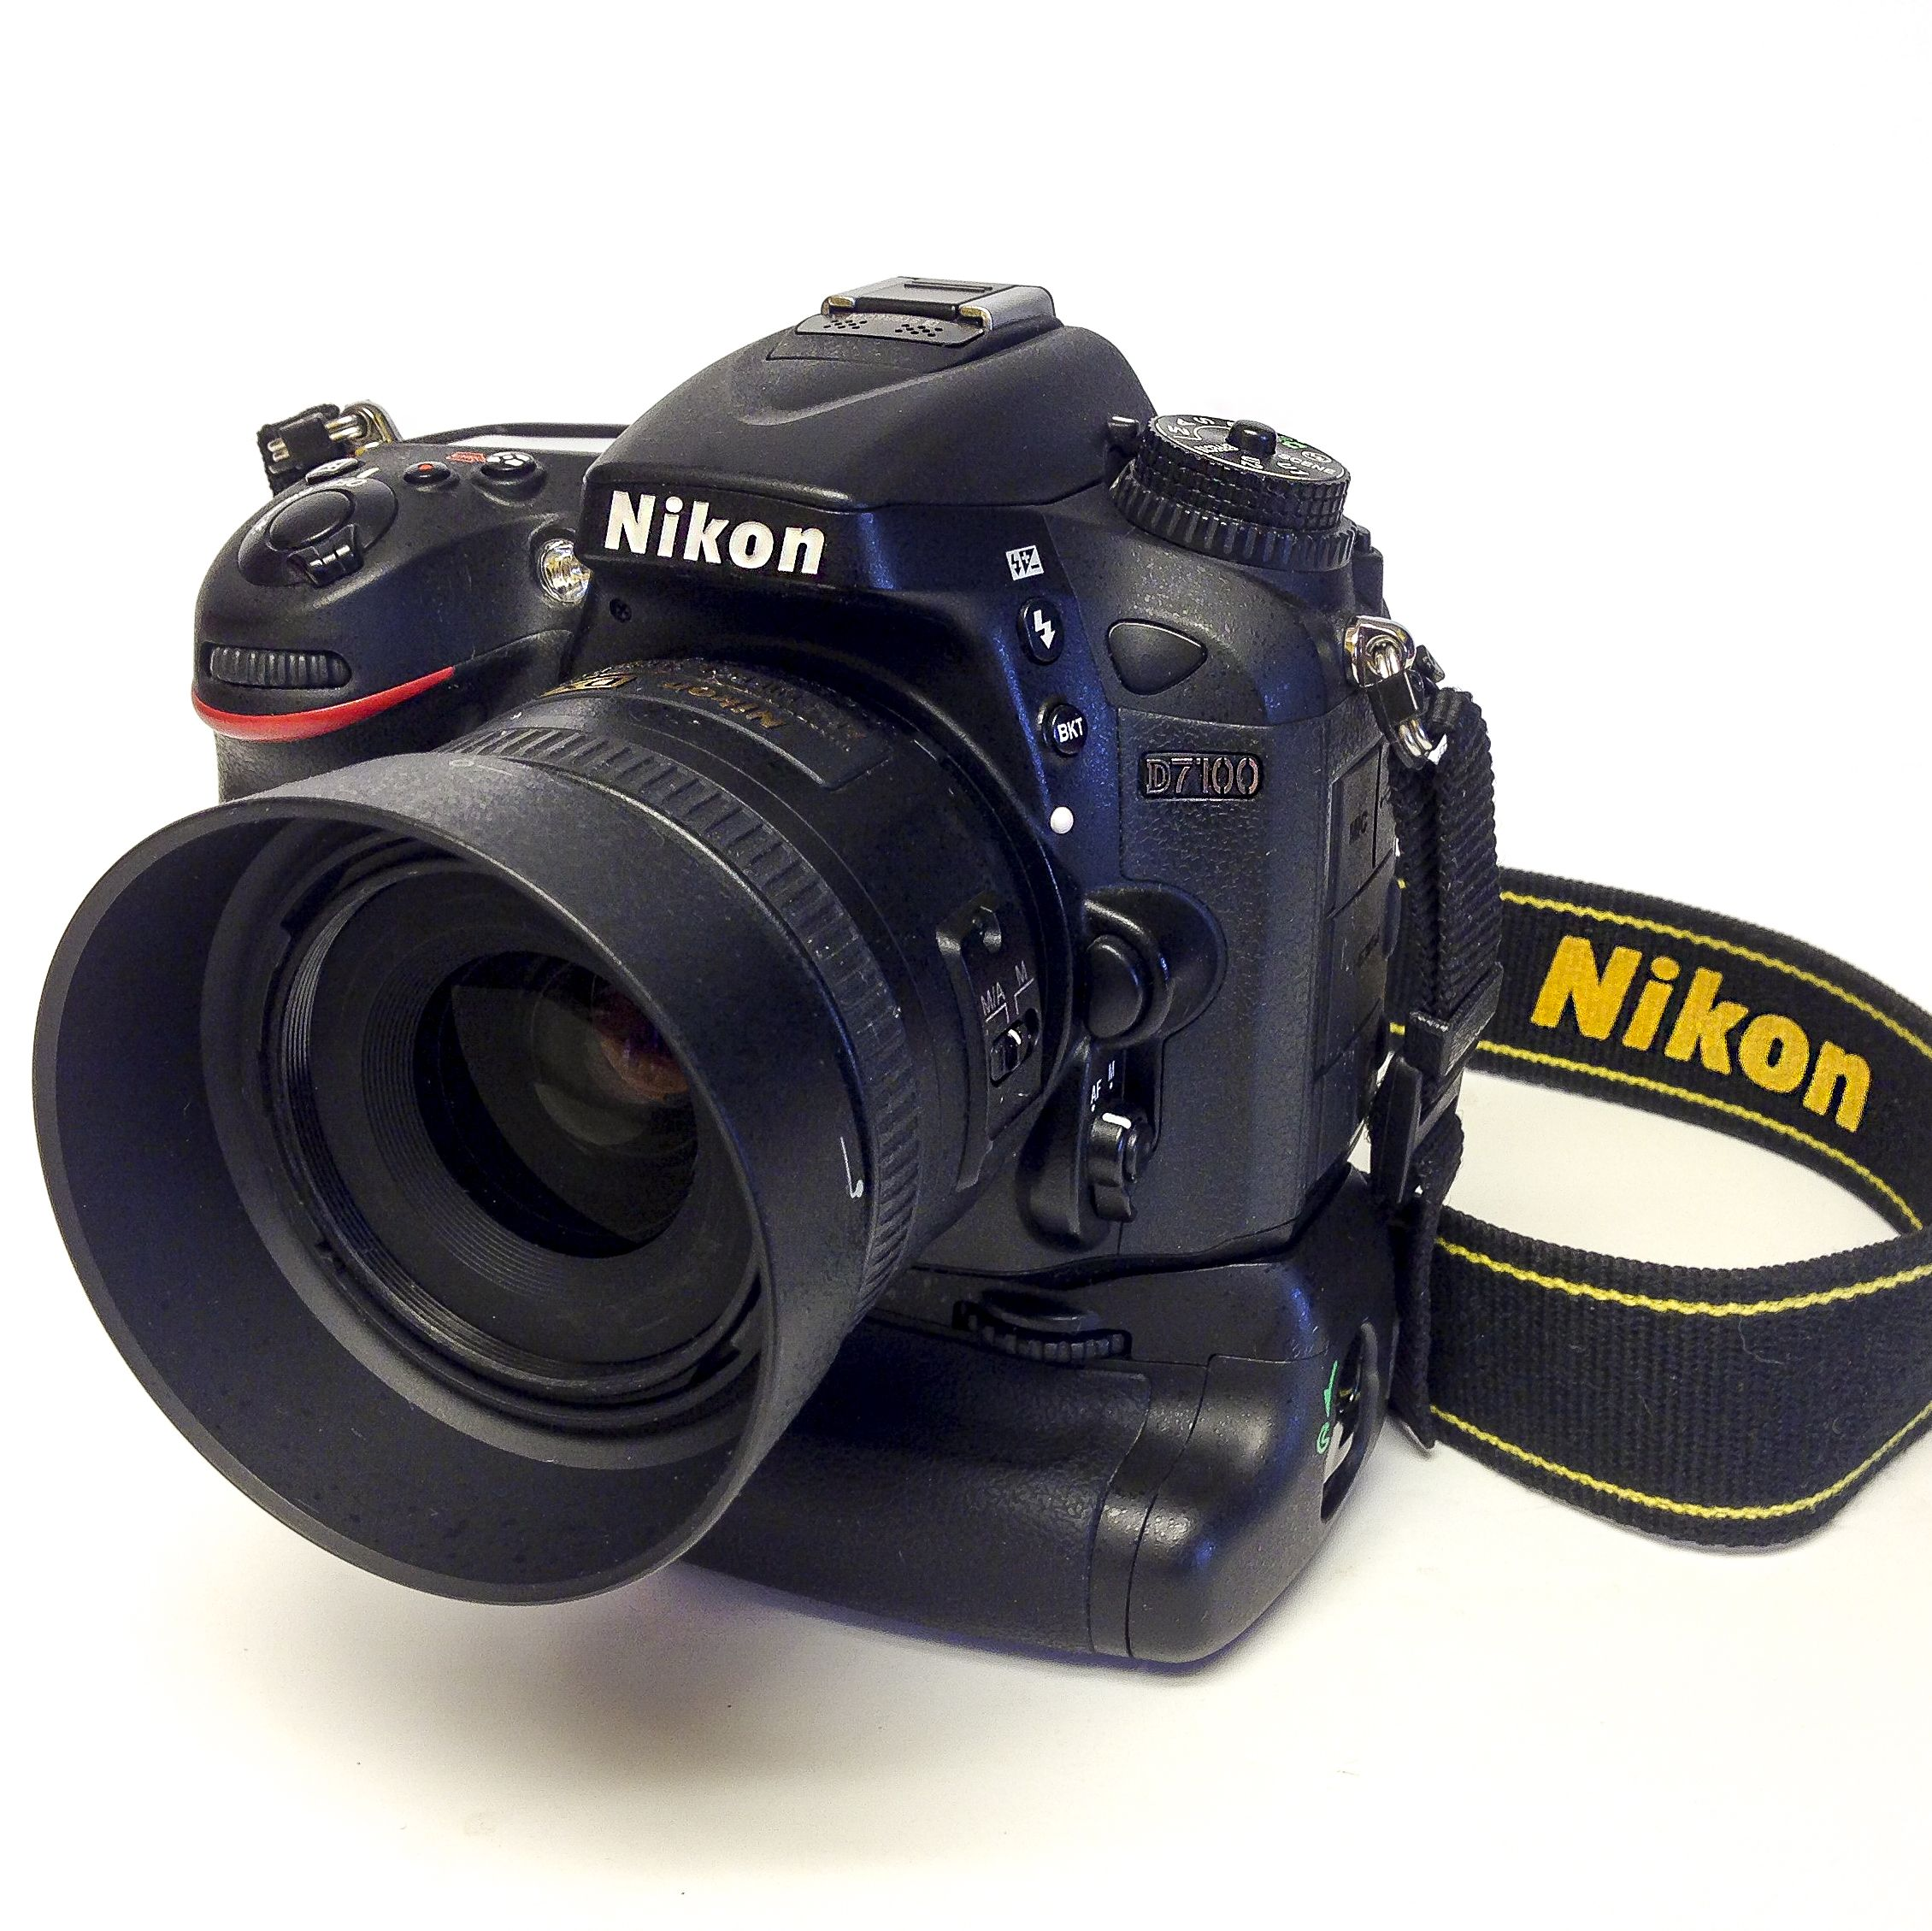 Nikon D7100 DSLR - Product Photography by model1photography ...